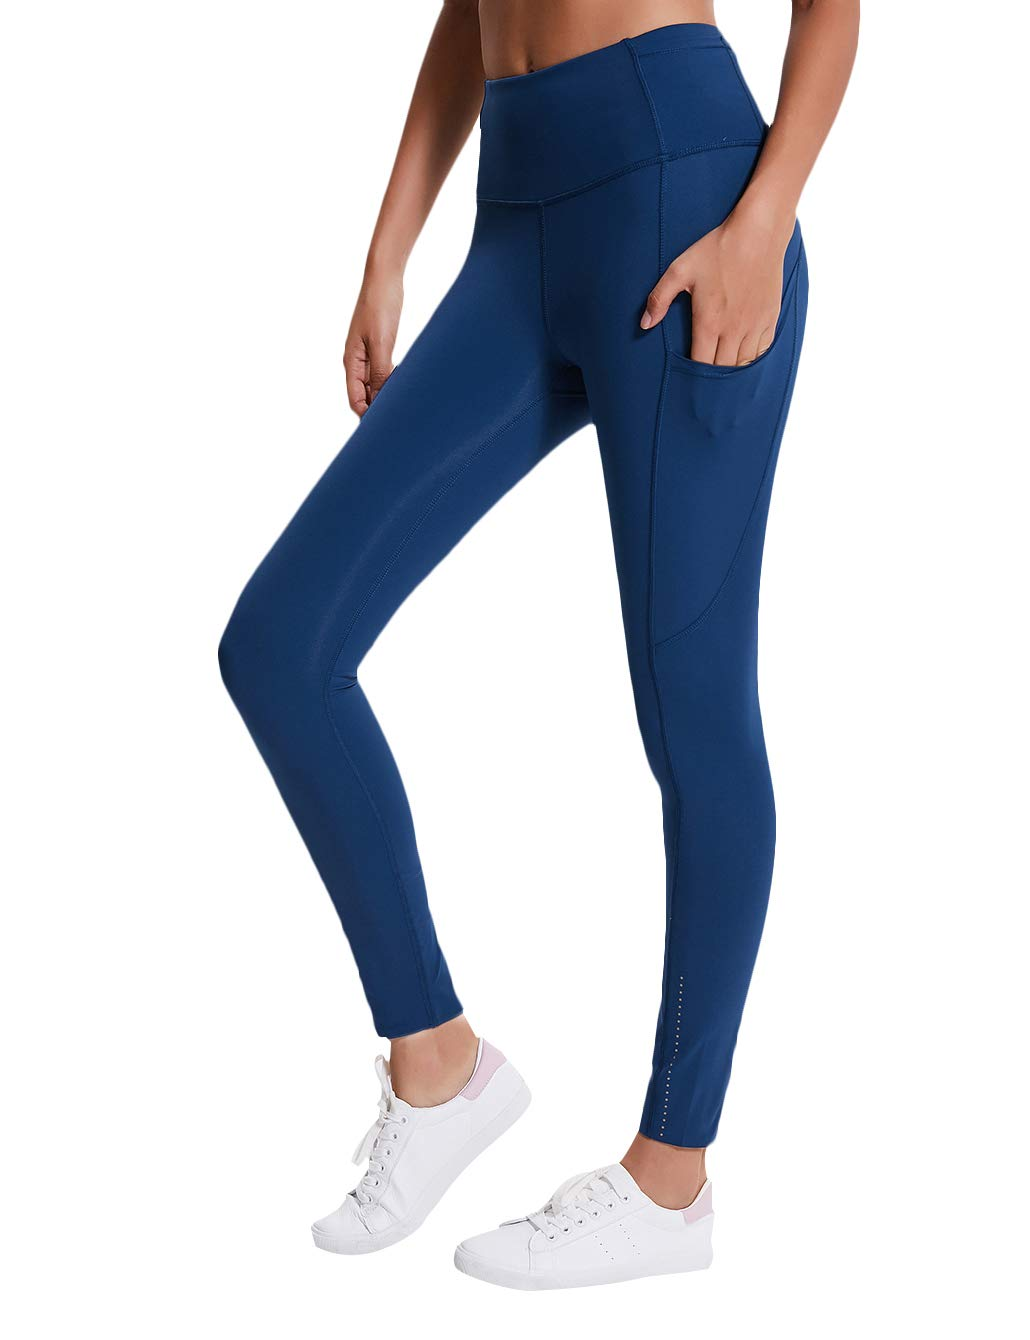 AJISAI Women High Waist Leggings with Pockets,Tummy Control Workout Running Stretch Yoga Pants Color Light Navy Size M